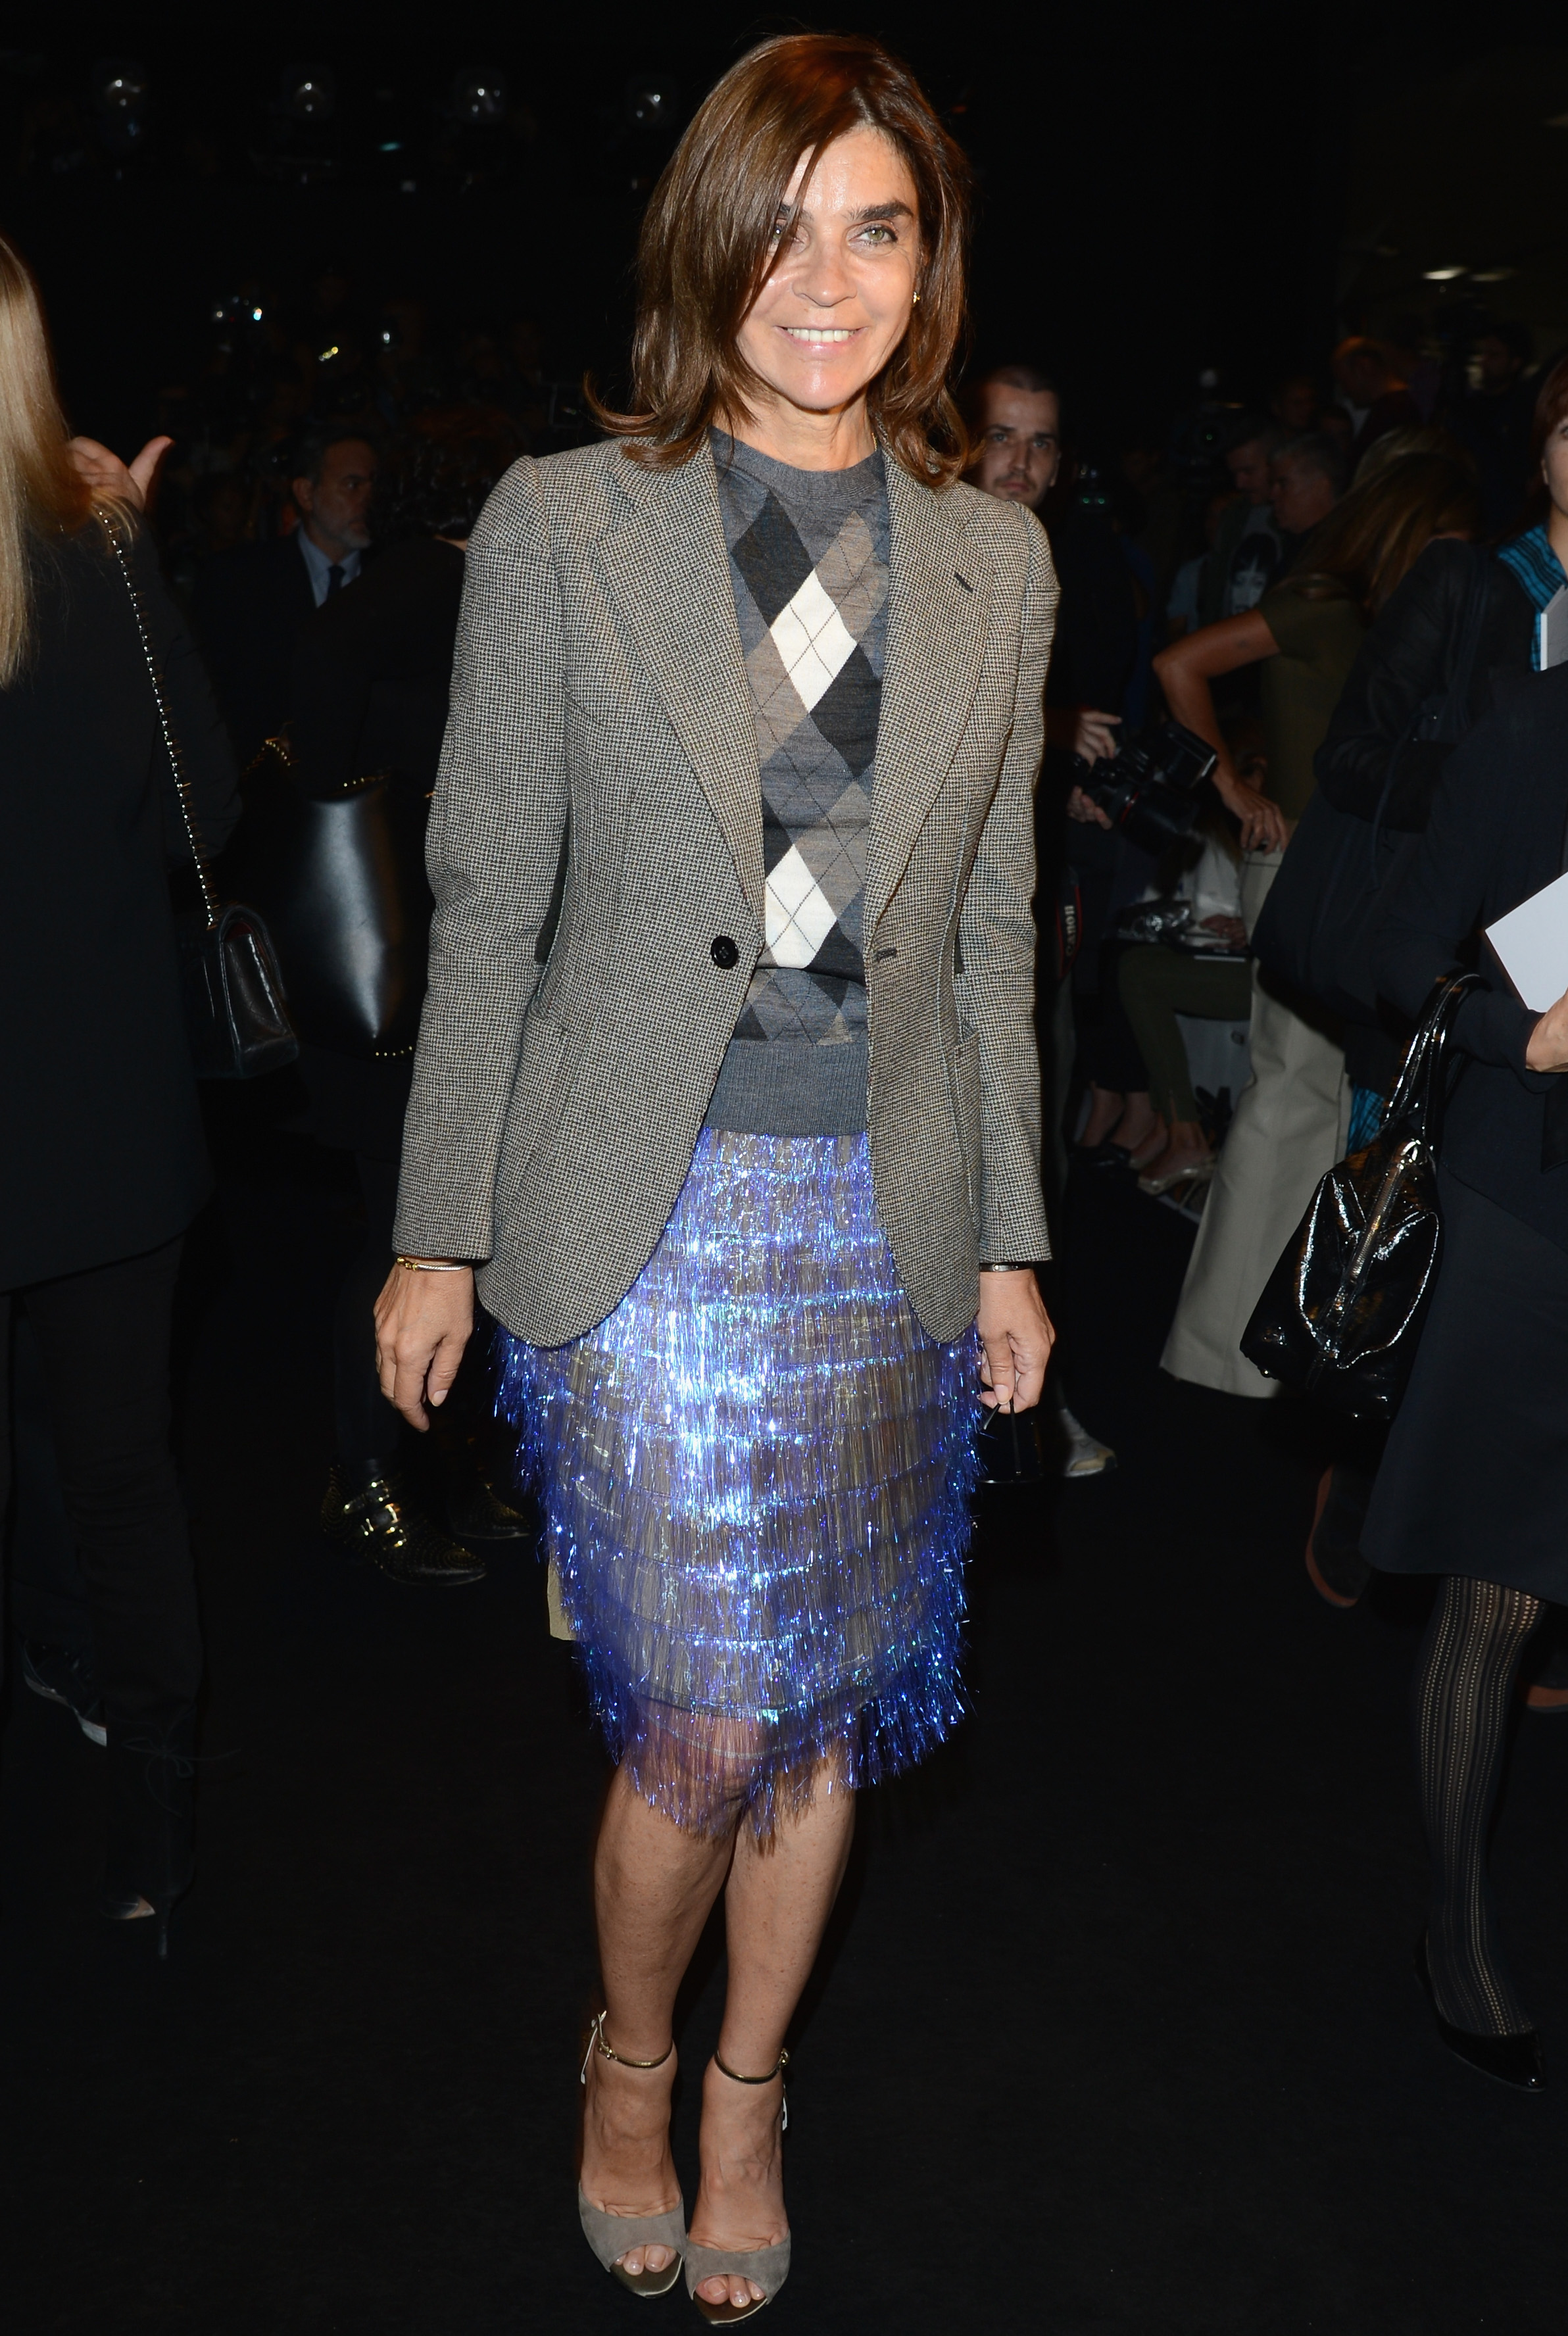 Carine Roitfeld loved her iridescent fringe skirt so much, she wore it to Gucci in Milan and to the Marc Jacobs Spring '13 show in NYC.